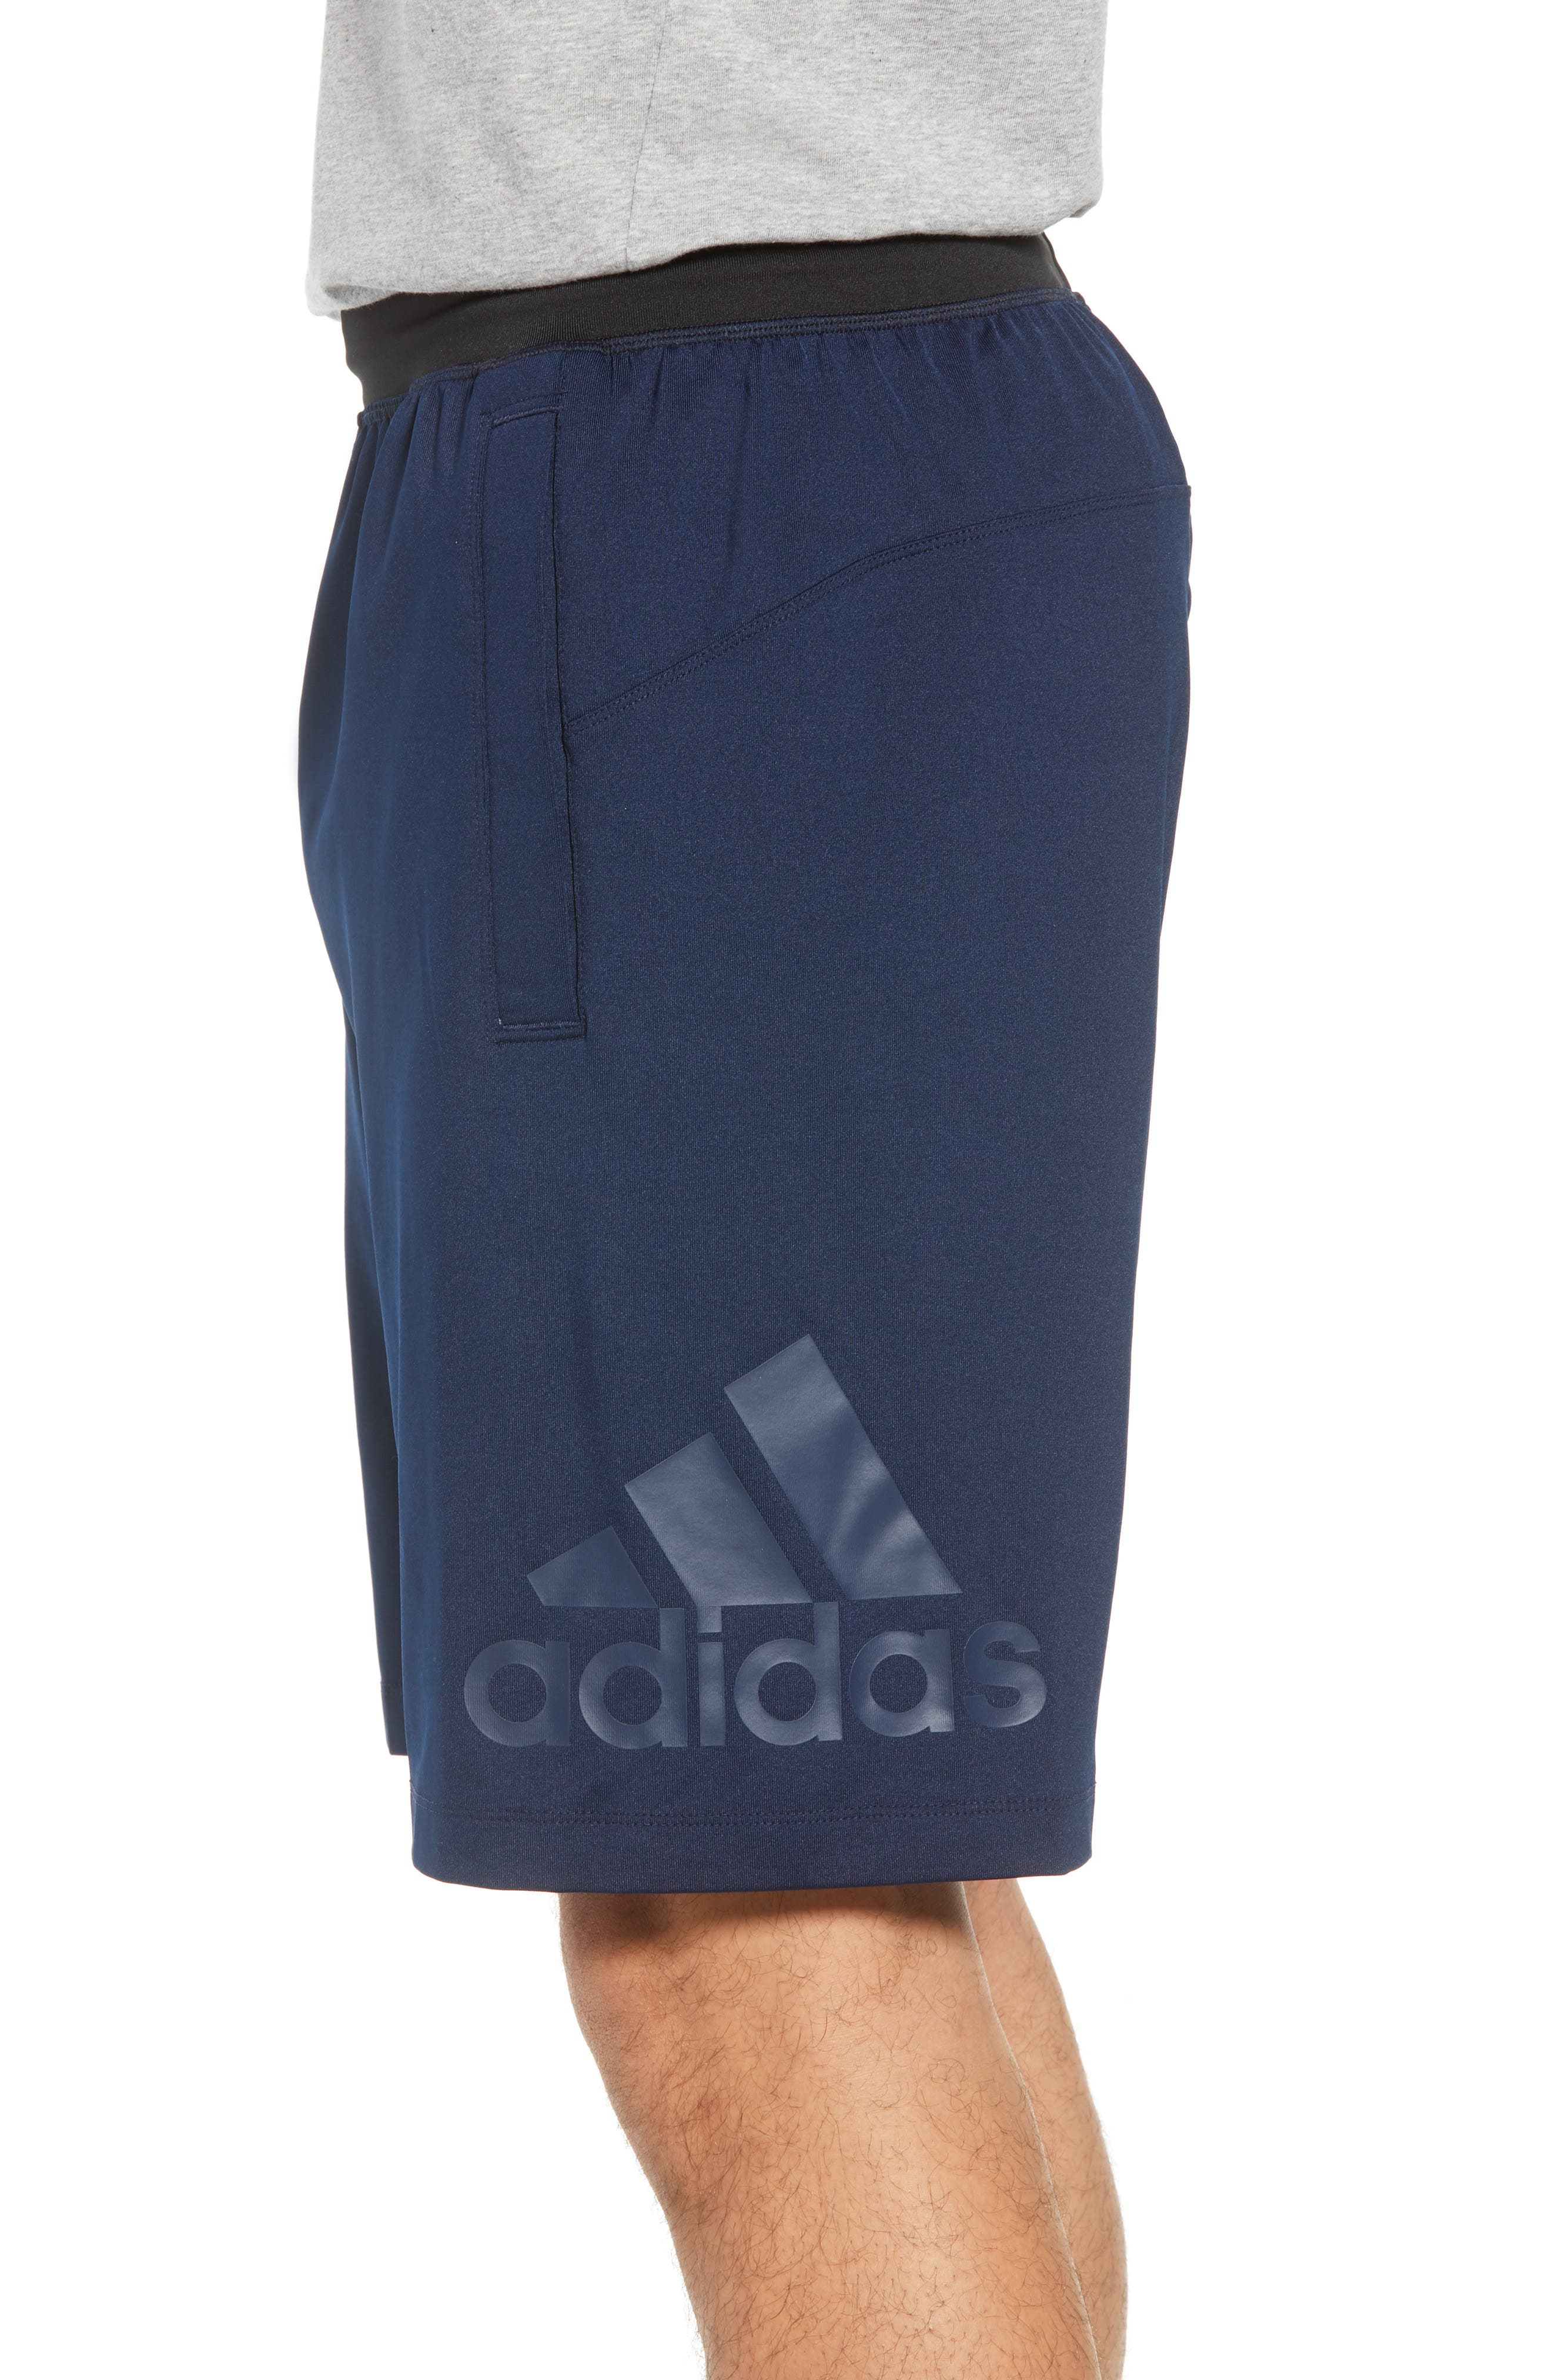 SB Hype Icon Shorts,                             Alternate thumbnail 3, color,                             COLLEGIATE NAVY/ BLACK